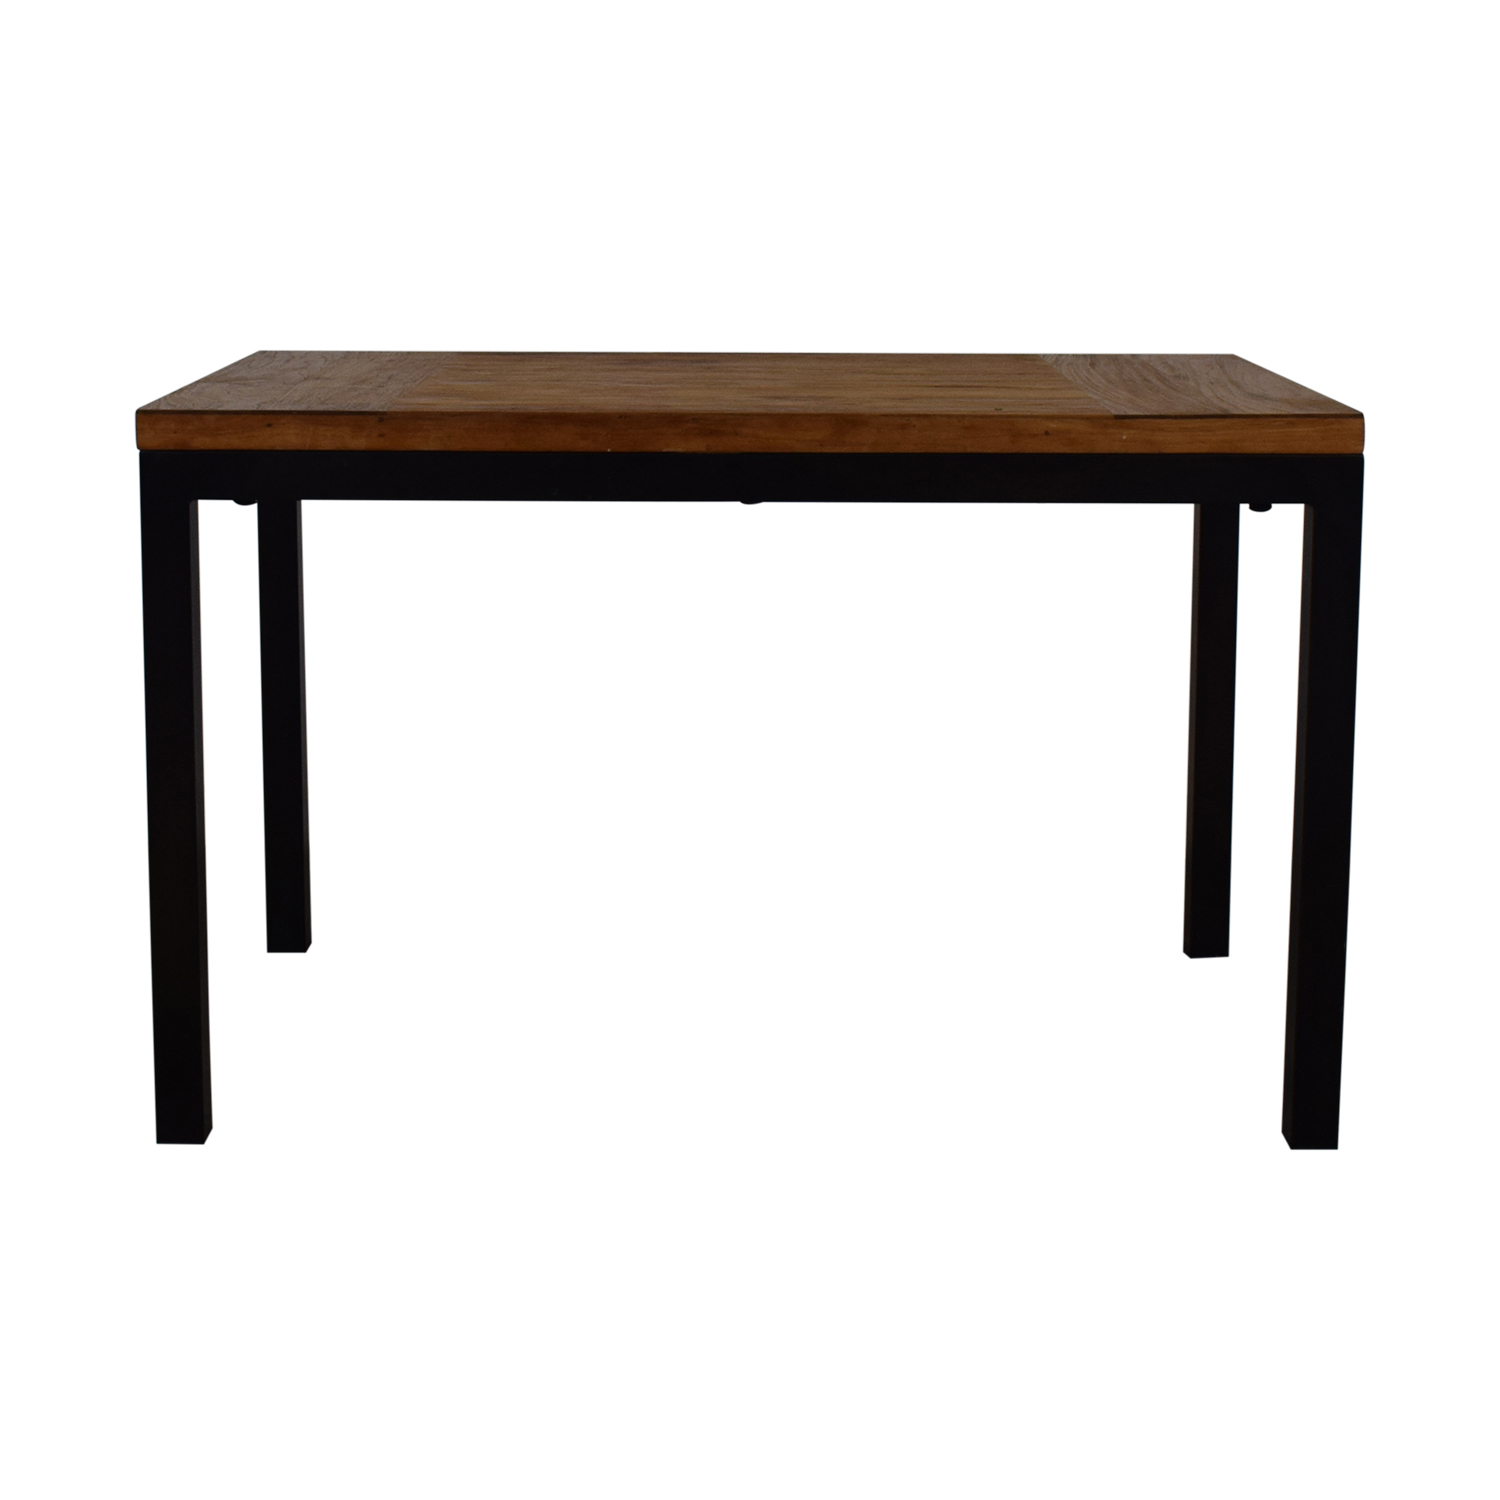 Crate & Barrel Crate & Barrel Parsons Kitchen Table With Metal Frame discount